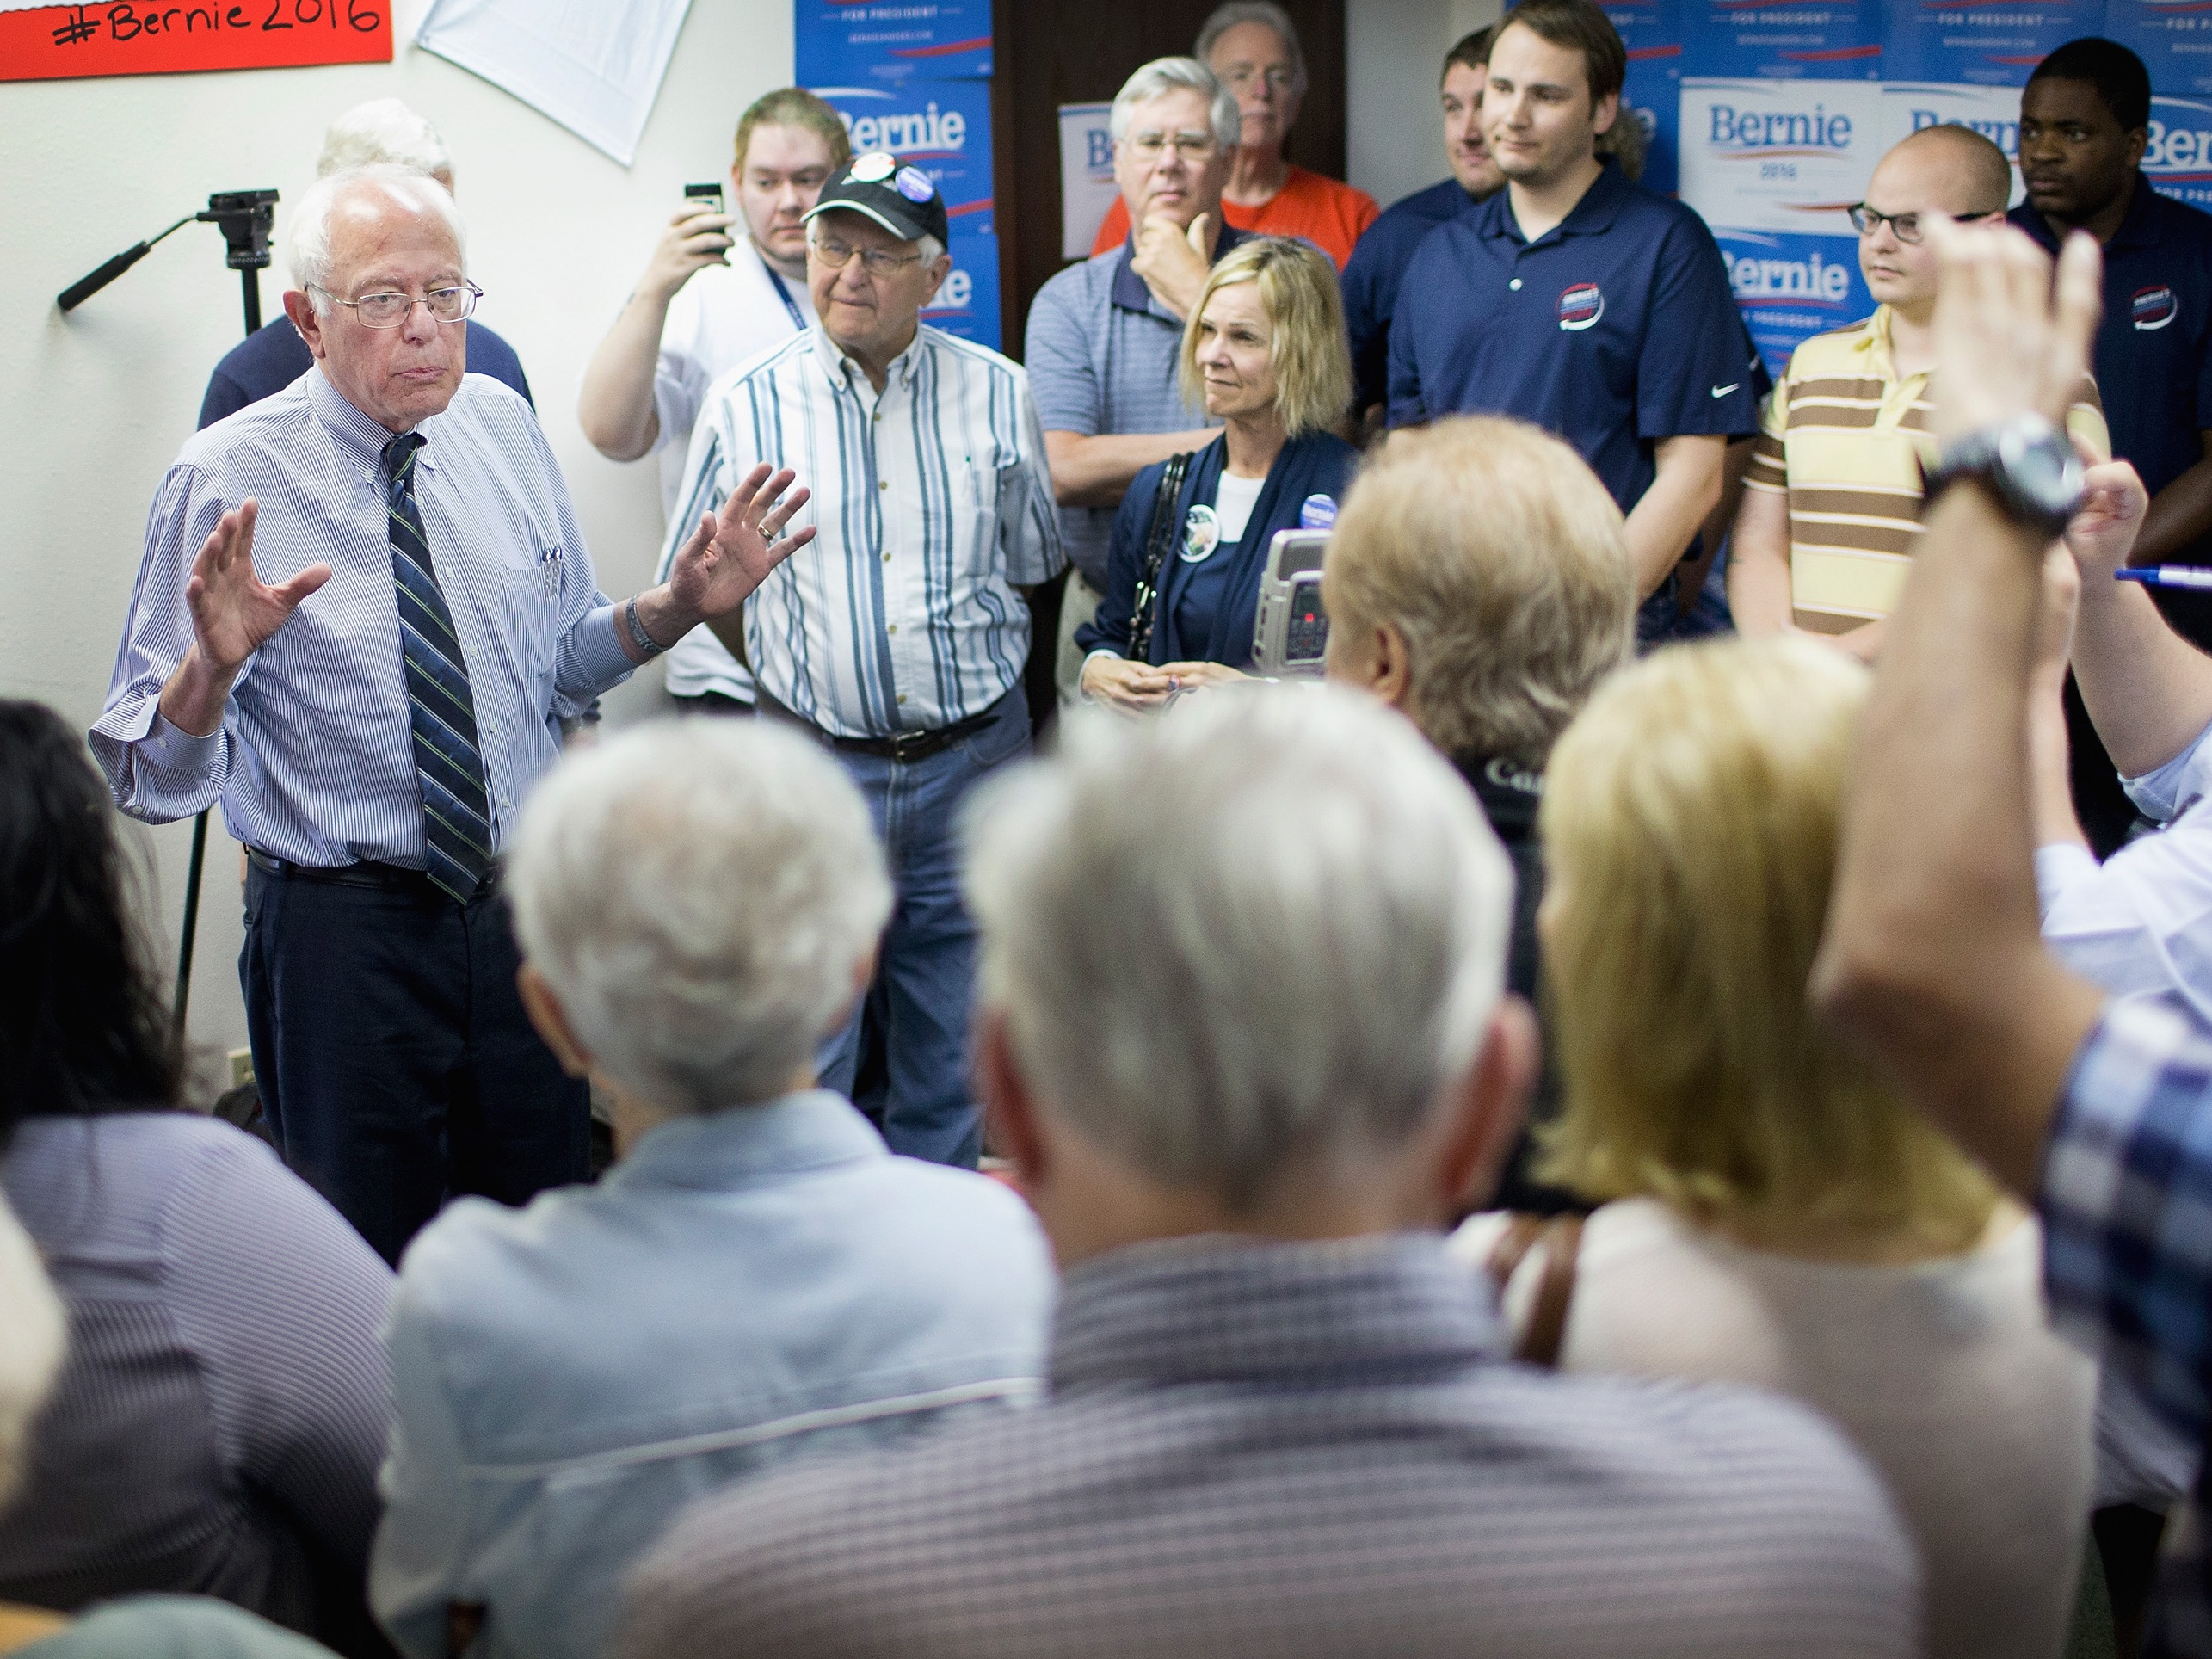 Democratic Candidate For President Bernie Sanders Campaigns In Iowa